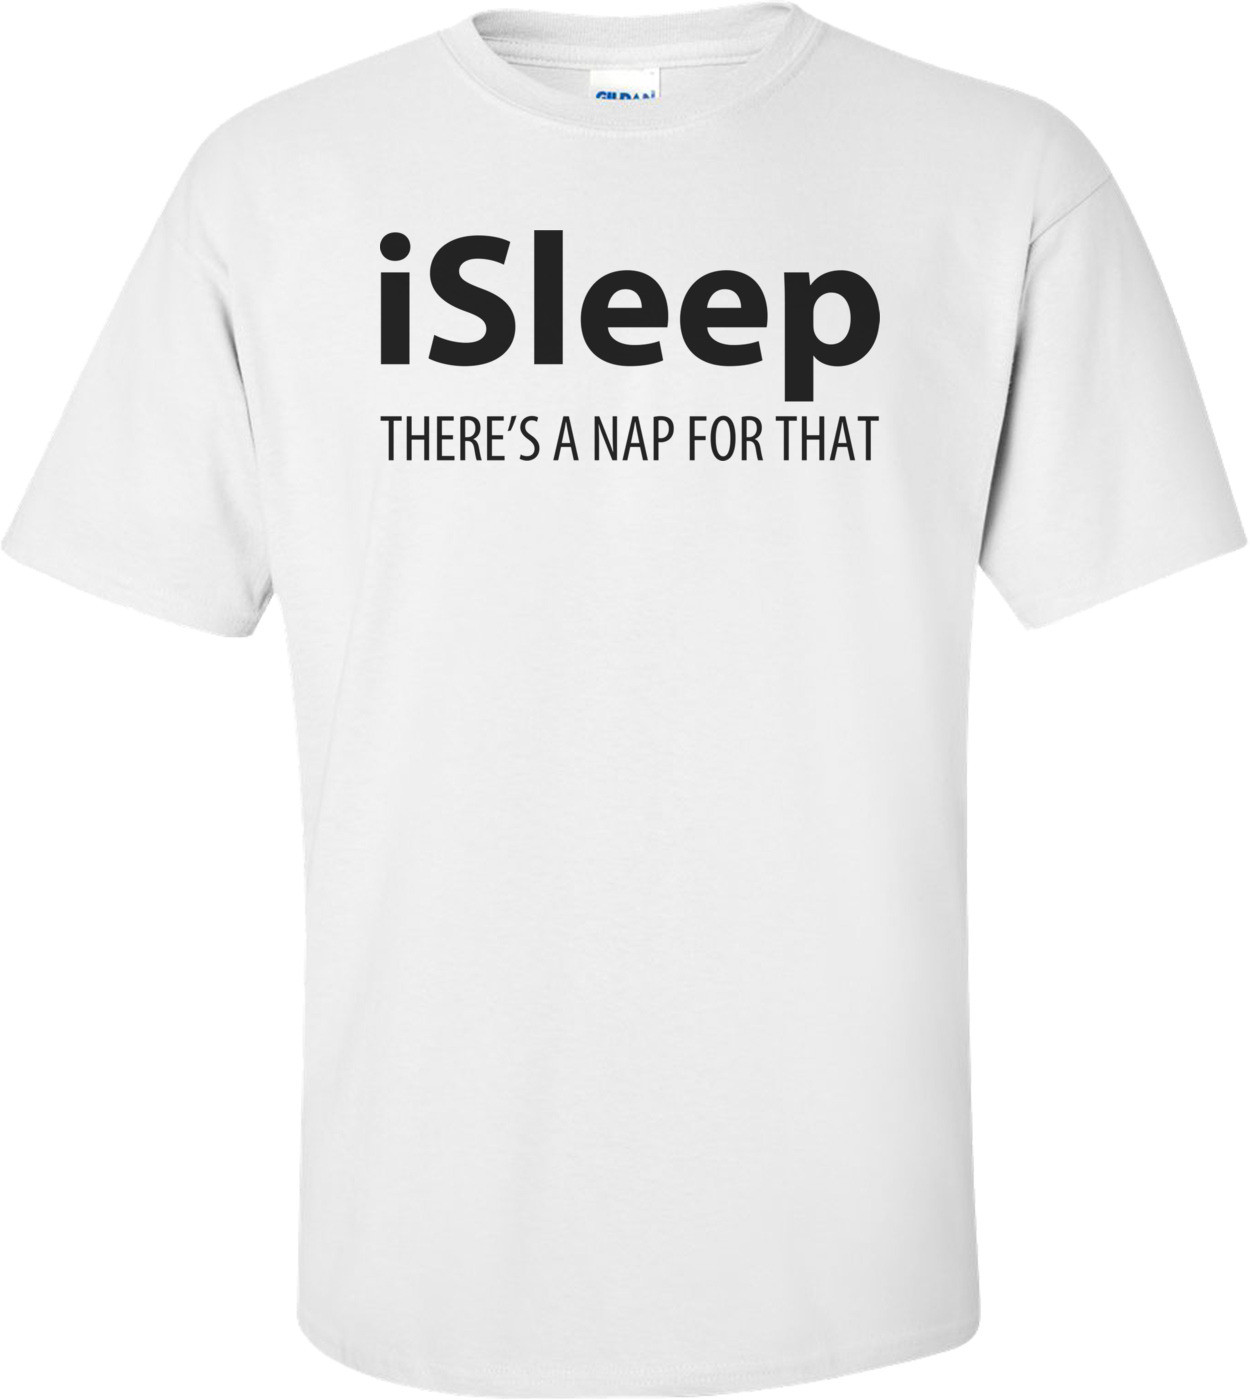 Isleep There's A Nap For That Shirt